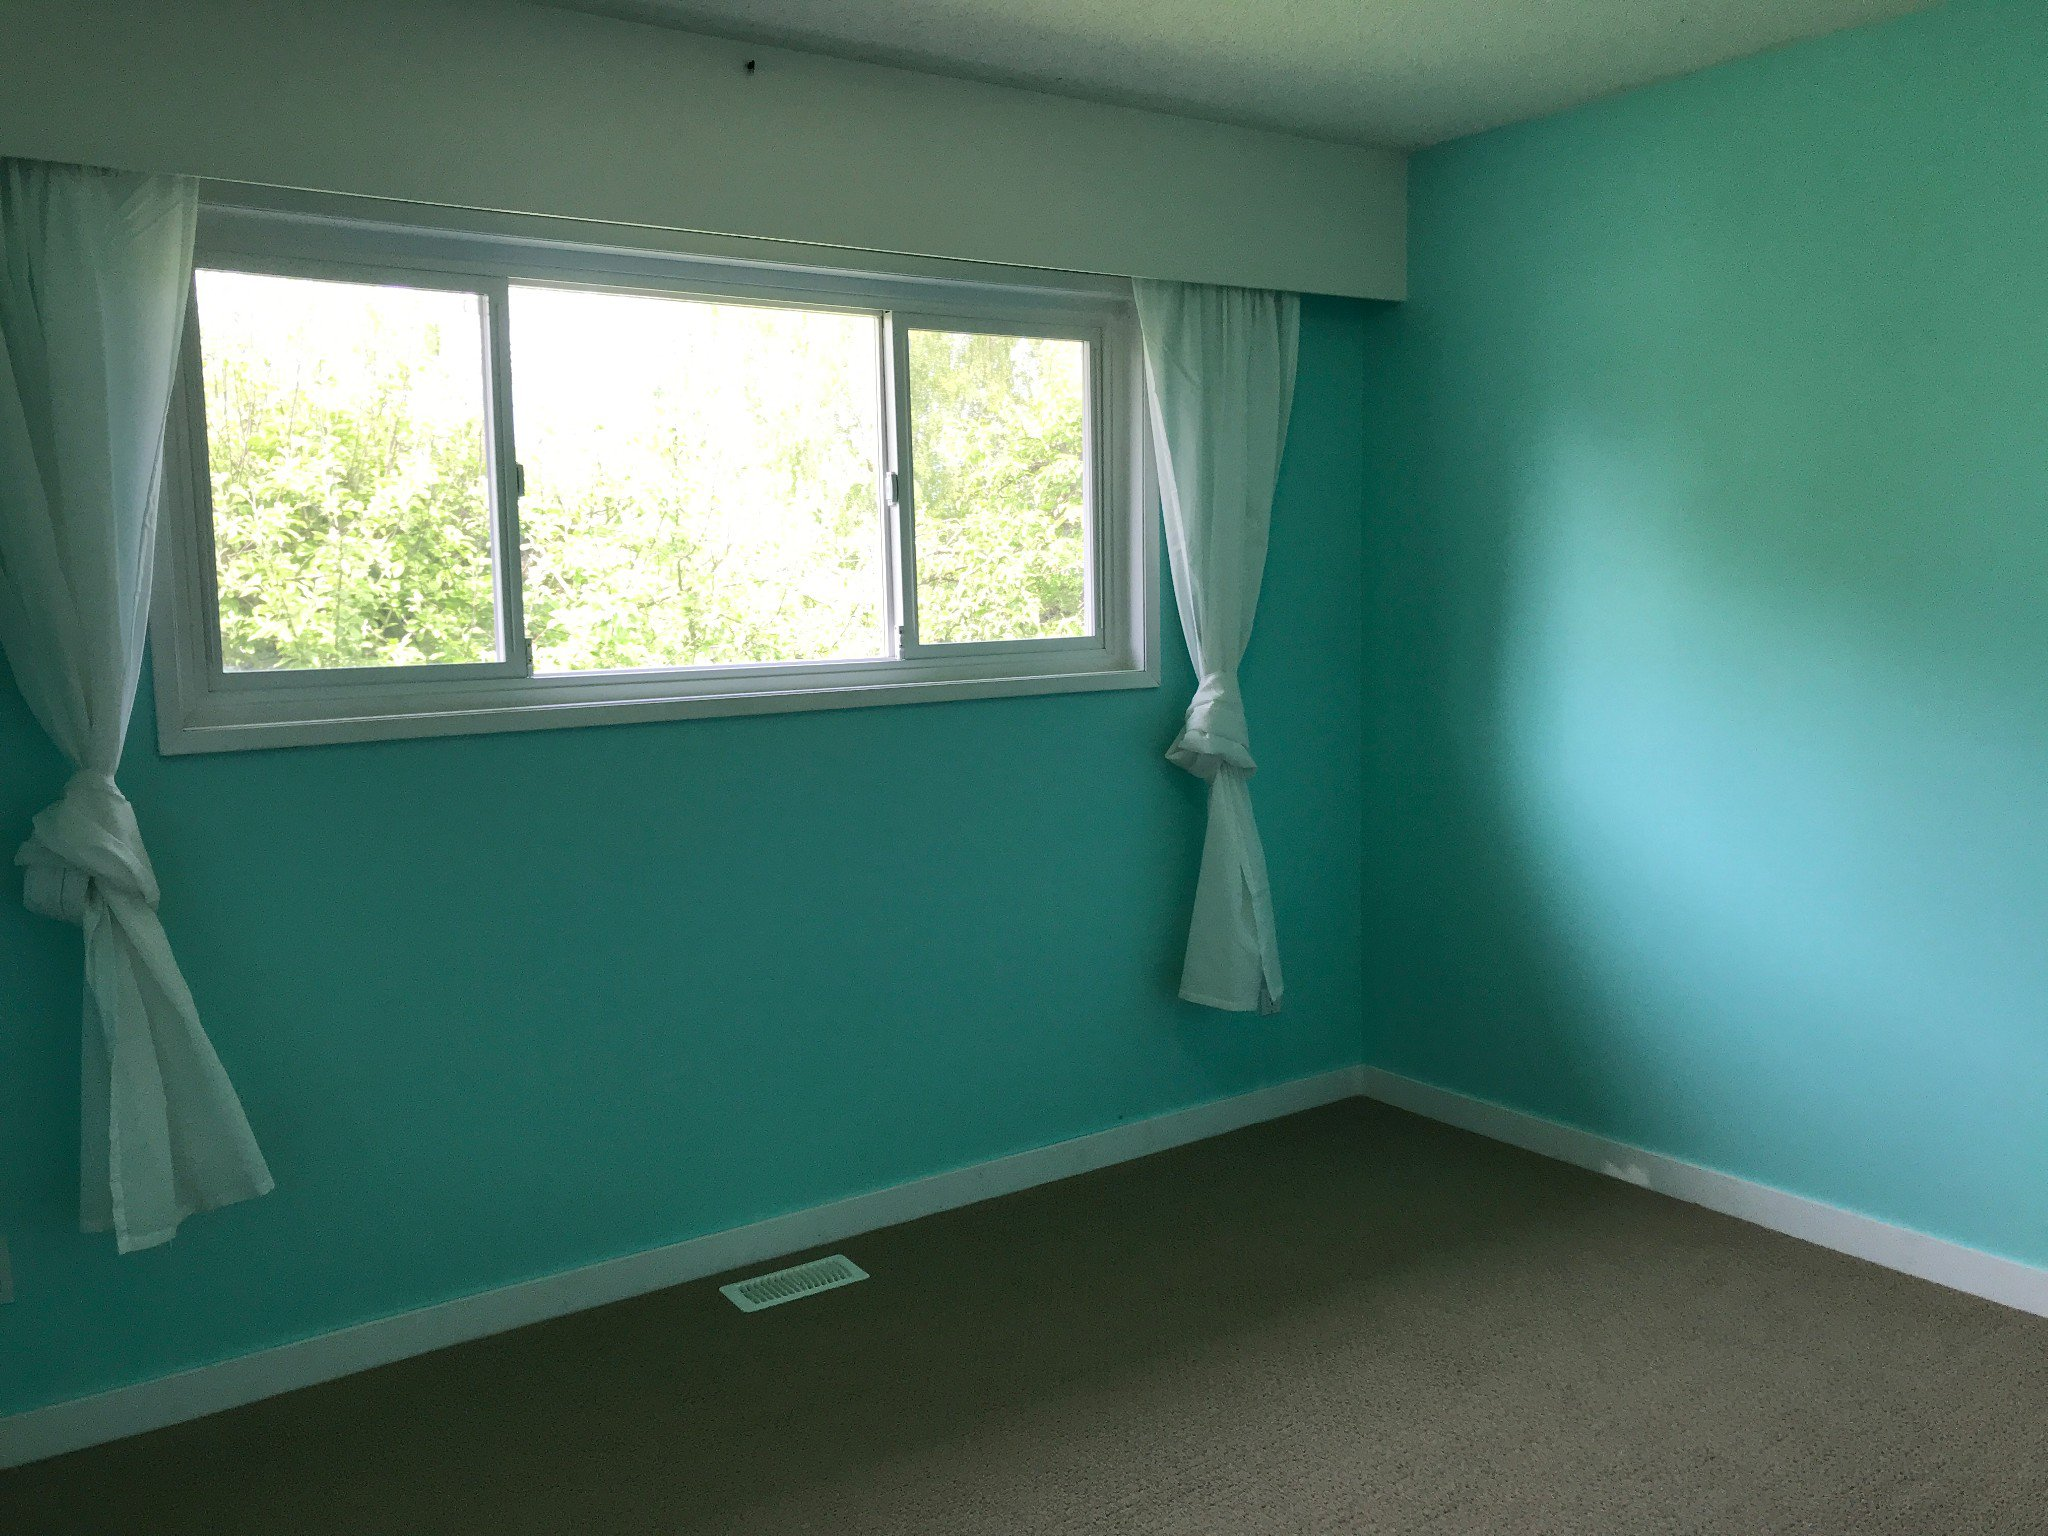 Photo 9: Photos: 2828 Arlington St. in Abbotsford: Central Abbotsford House for rent